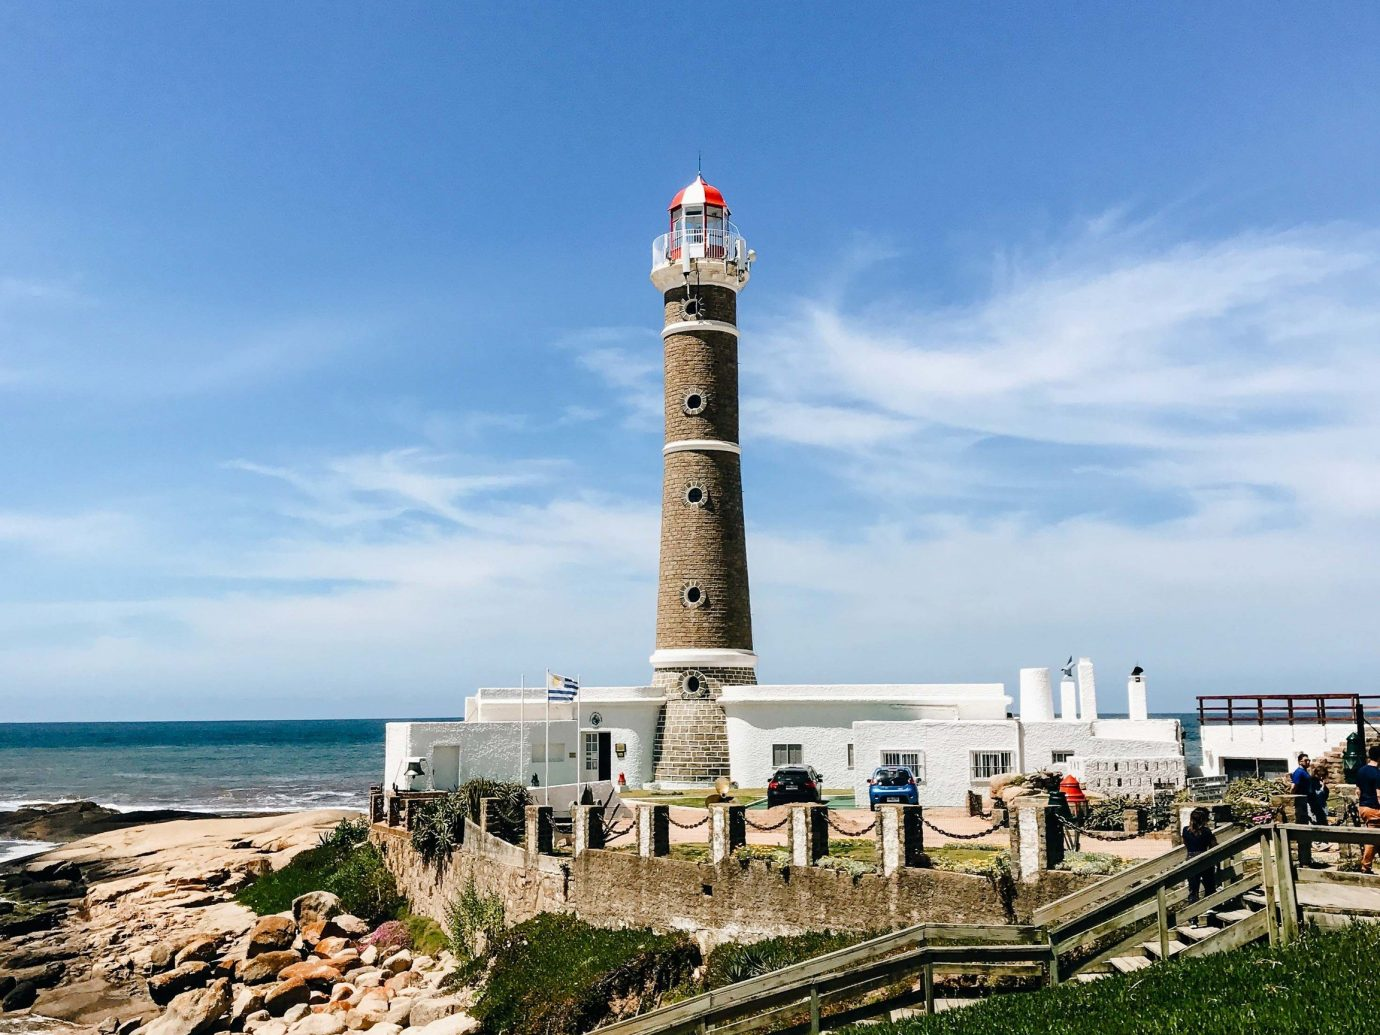 Beach Romantic Getaways south america Trip Ideas Uruguay lighthouse tower sky Sea Coast promontory beacon shore daytime cloud cape